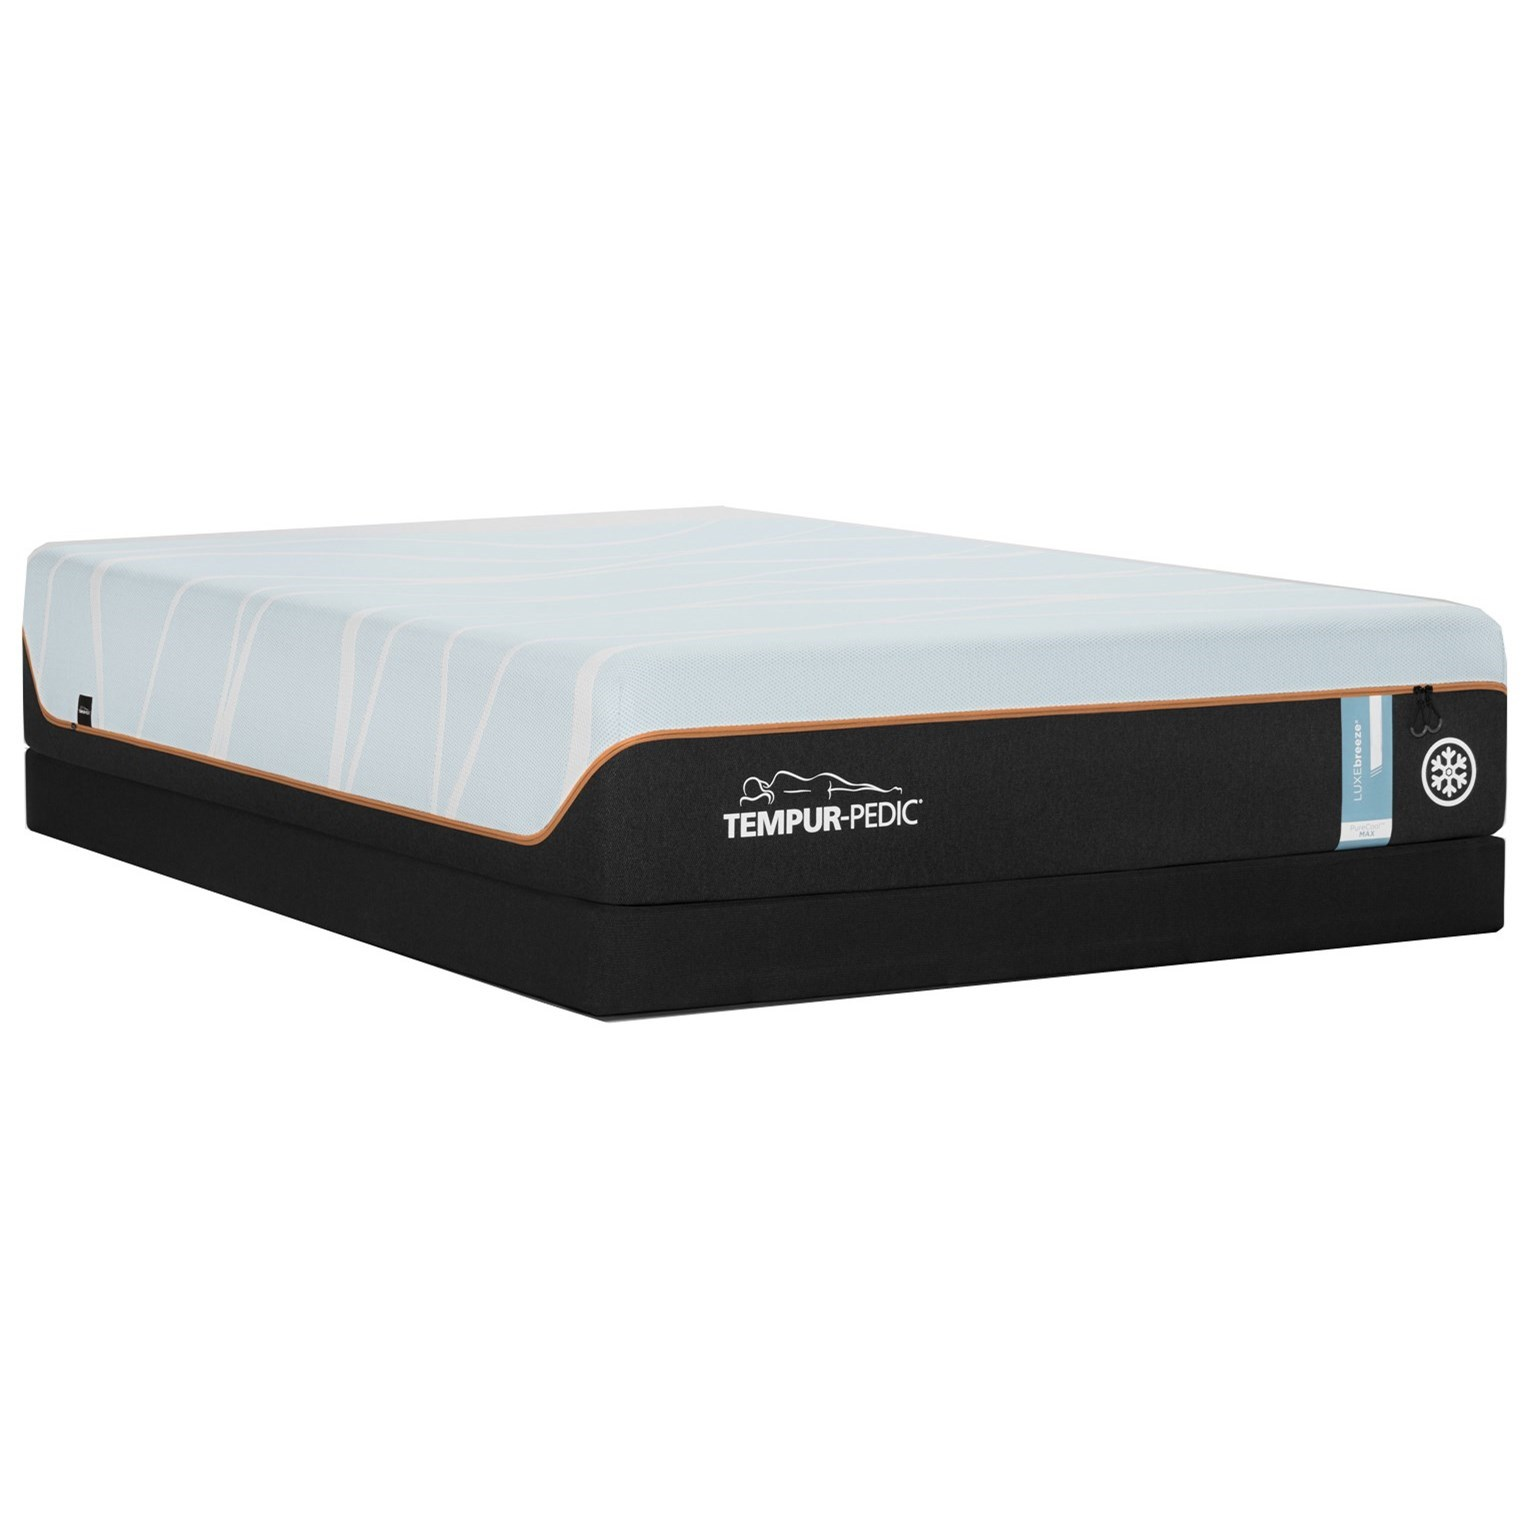 Tempur-LuxeAdapt Plush Tempur-Pedic Twin XL Plush Mattress Set by Tempur-Pedic® at C. S. Wo & Sons Hawaii